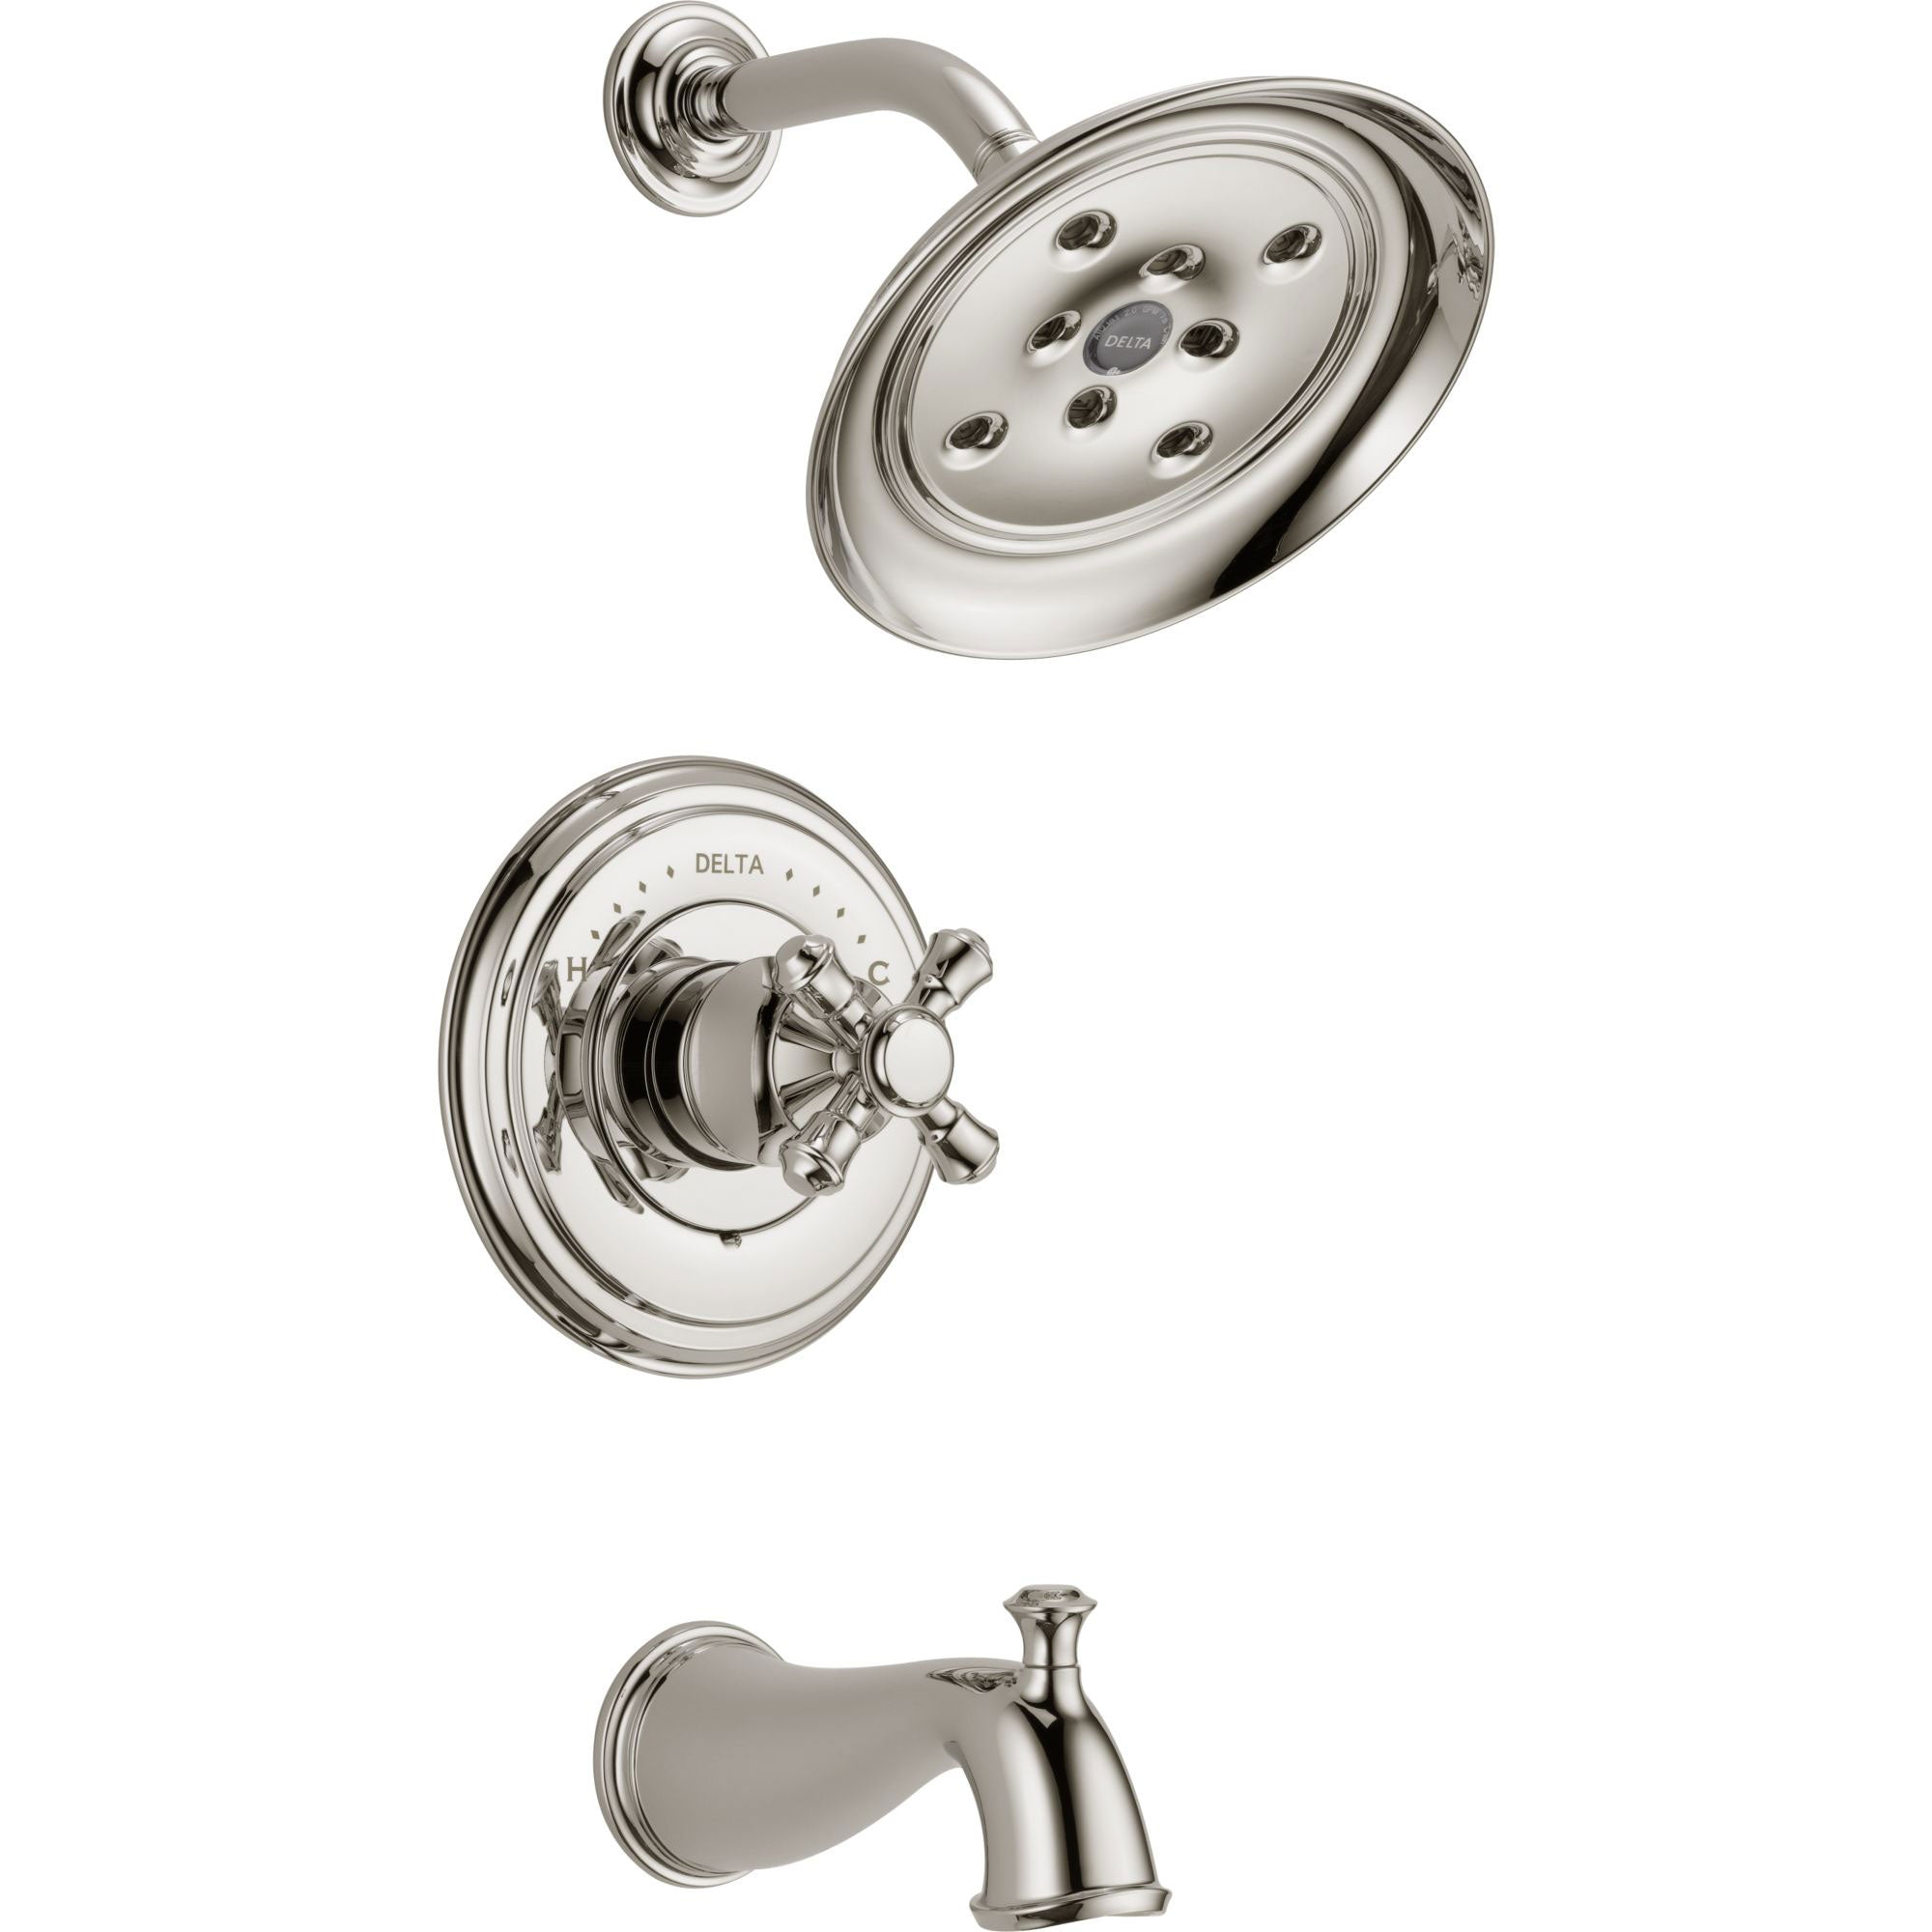 Delta Cassidy Polished Nickel Finish 14 Series Tub and Shower Combination Faucet INCLUDES Rough-in Valve with Stops and Single Cross Handle D1165V